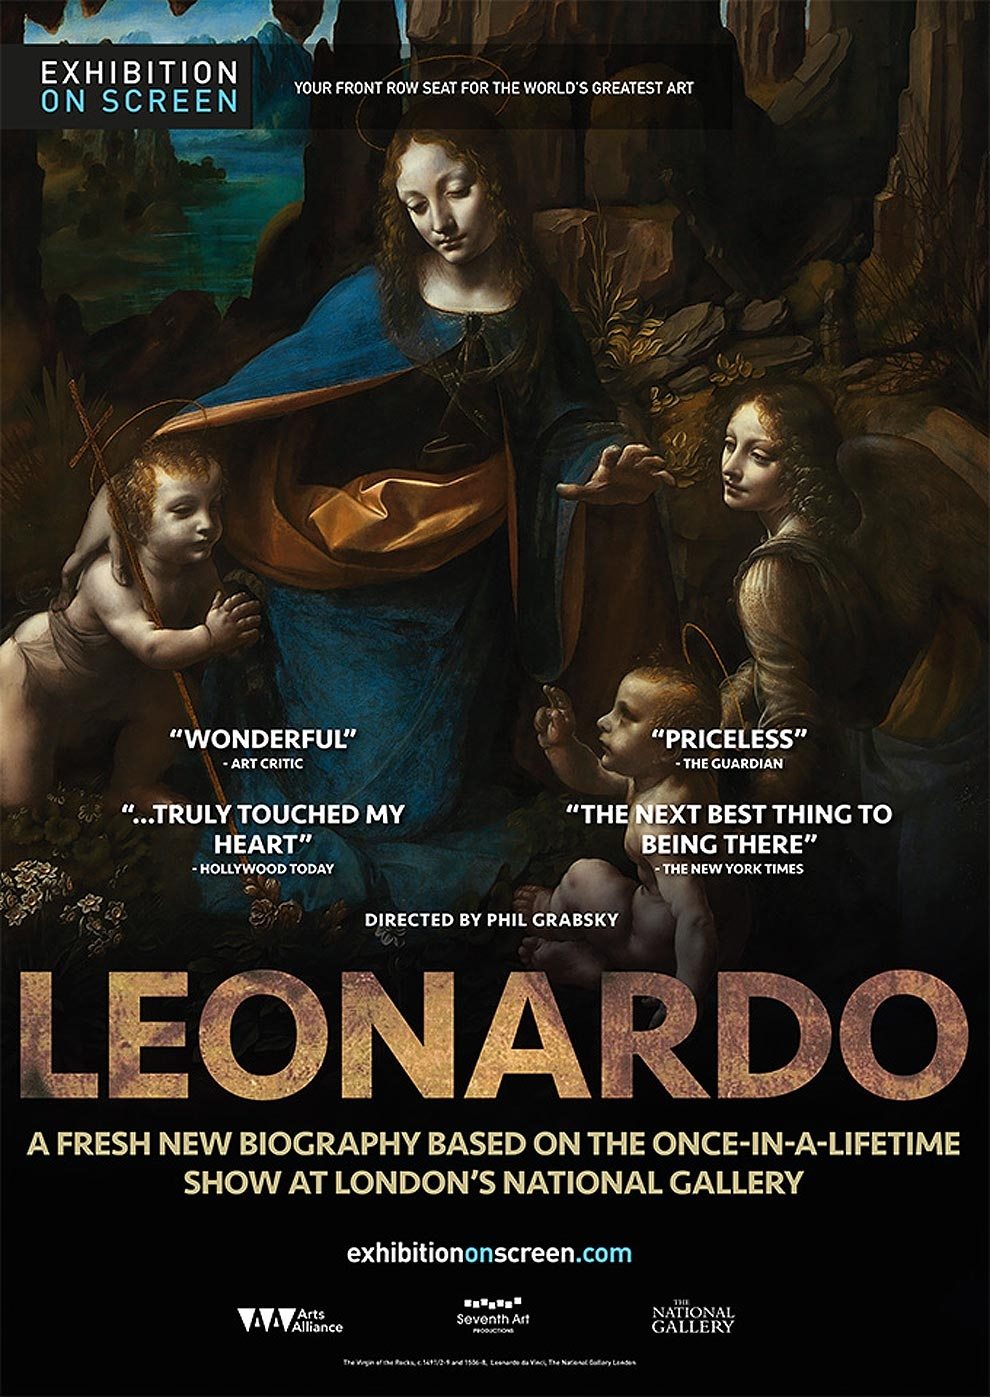 Exhibition on Screen: Leonardo (2012) (Poster)